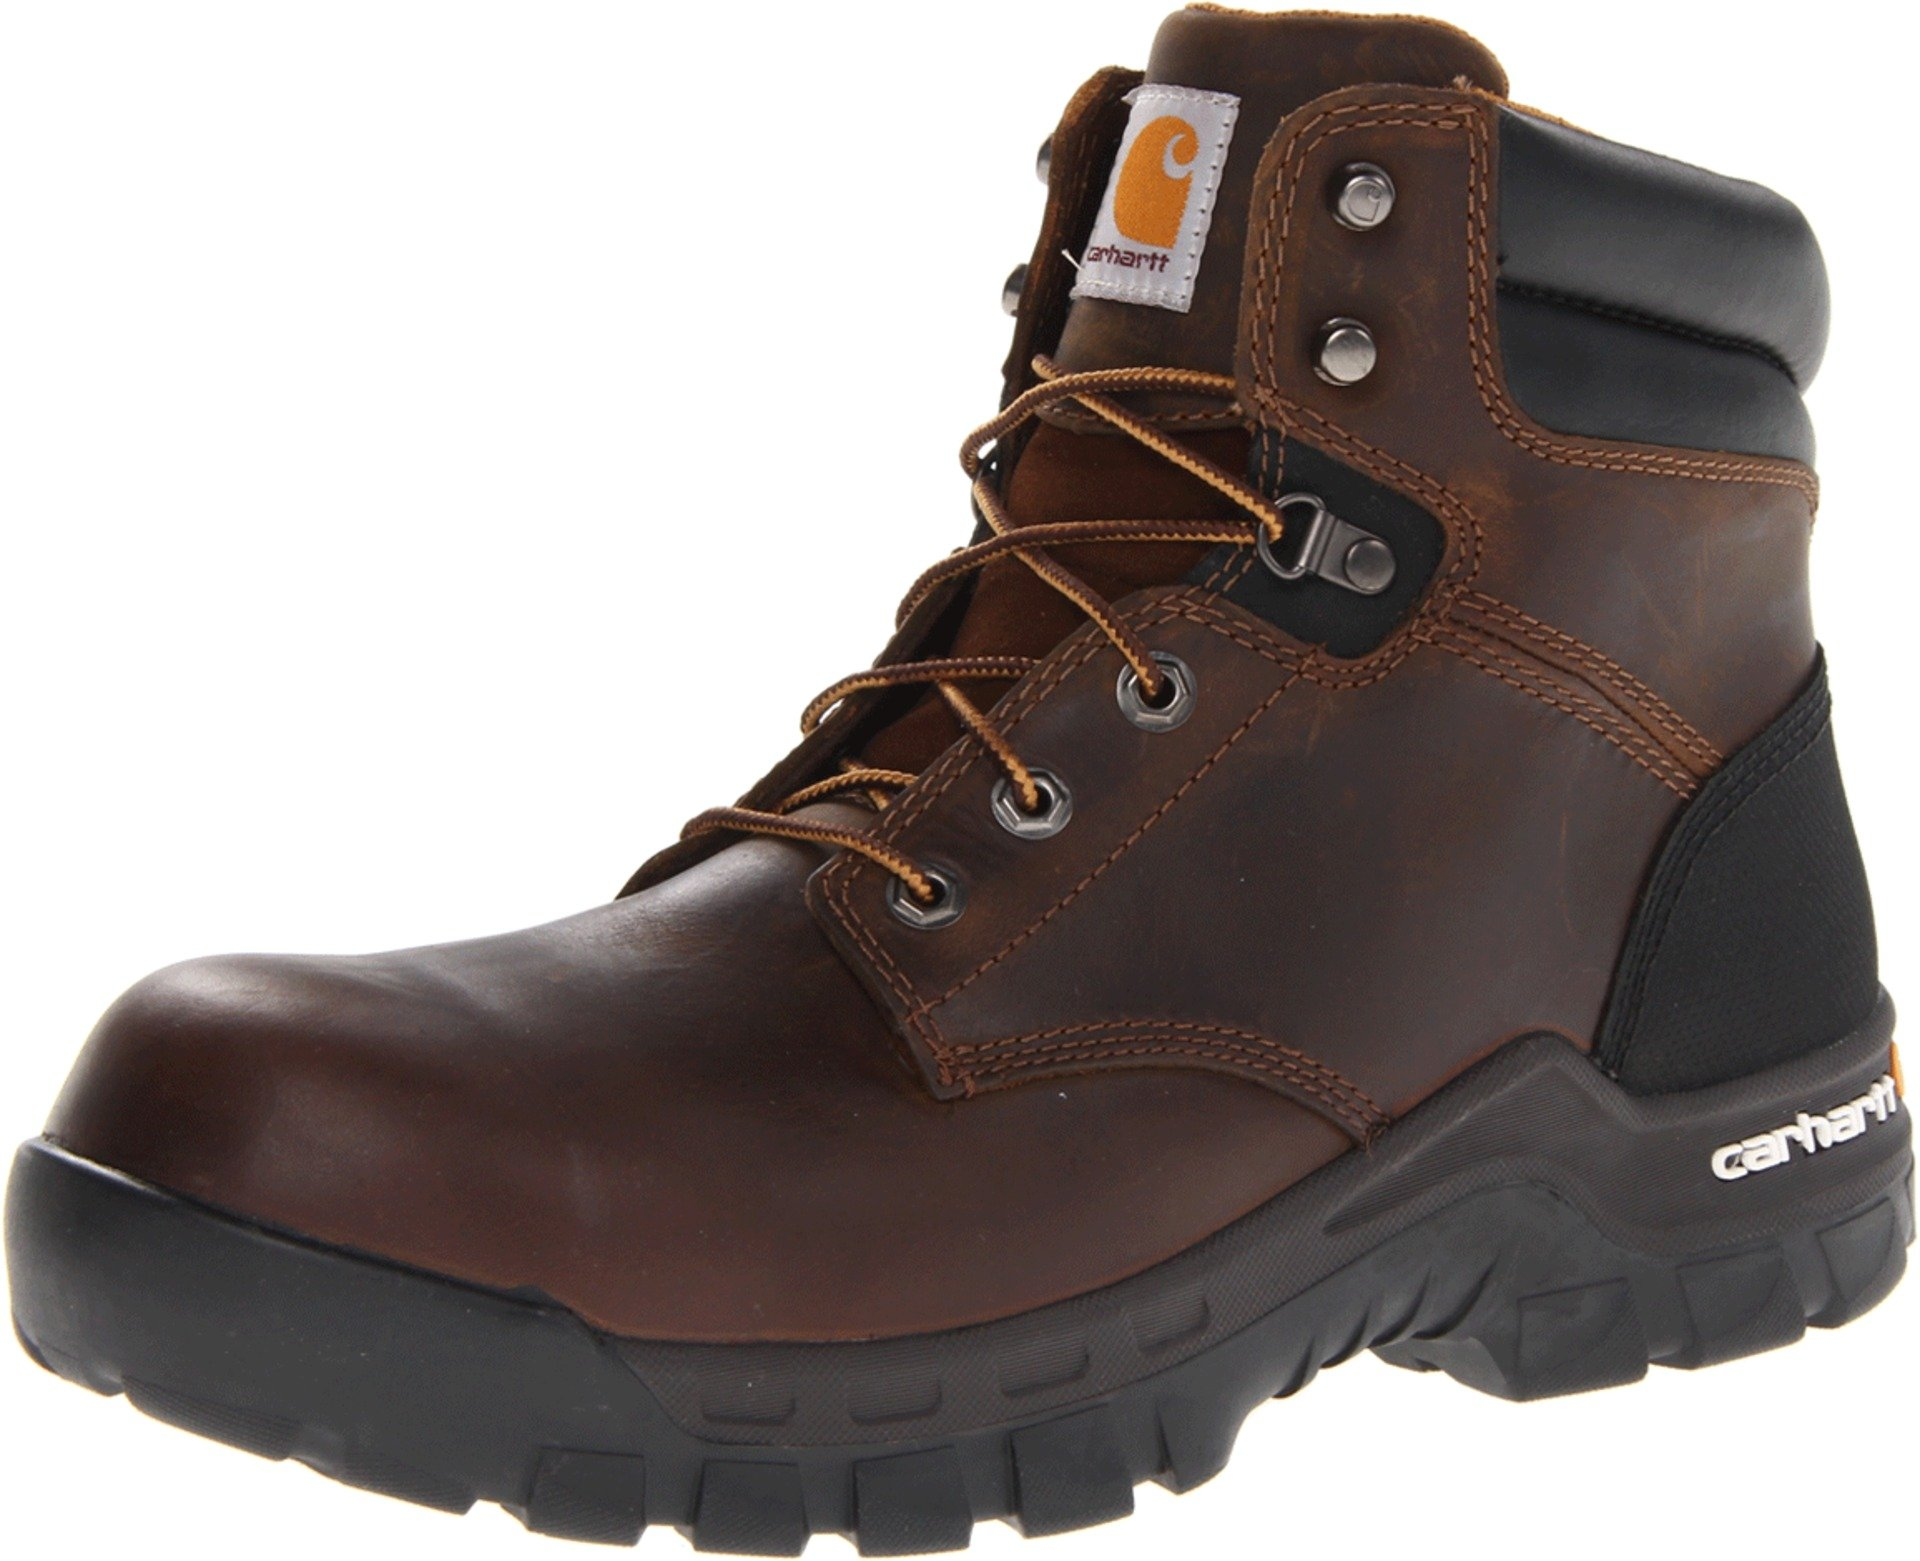 Carhartt Men's 6'' Rugged Flex Waterproof Breathable Composite Toe Leather Work Boot CMF6366,Brown Oil Tanned Leather,10 M US by Carhartt